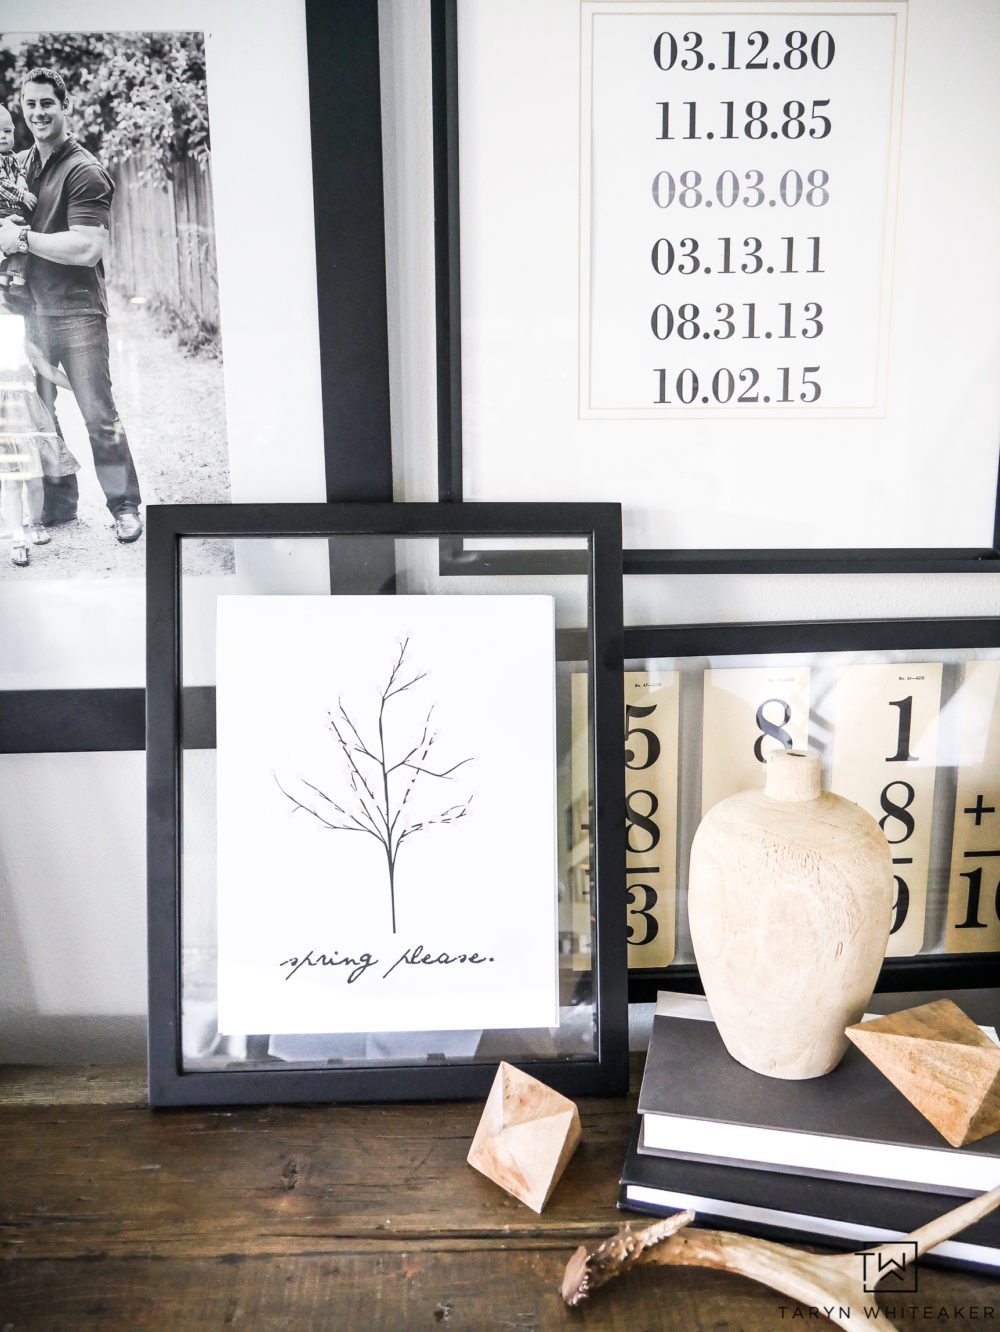 Refresh your decor for spring with this super cute and simple spring printable! The black and white print is perfect for minimalist and modern designed spaces.